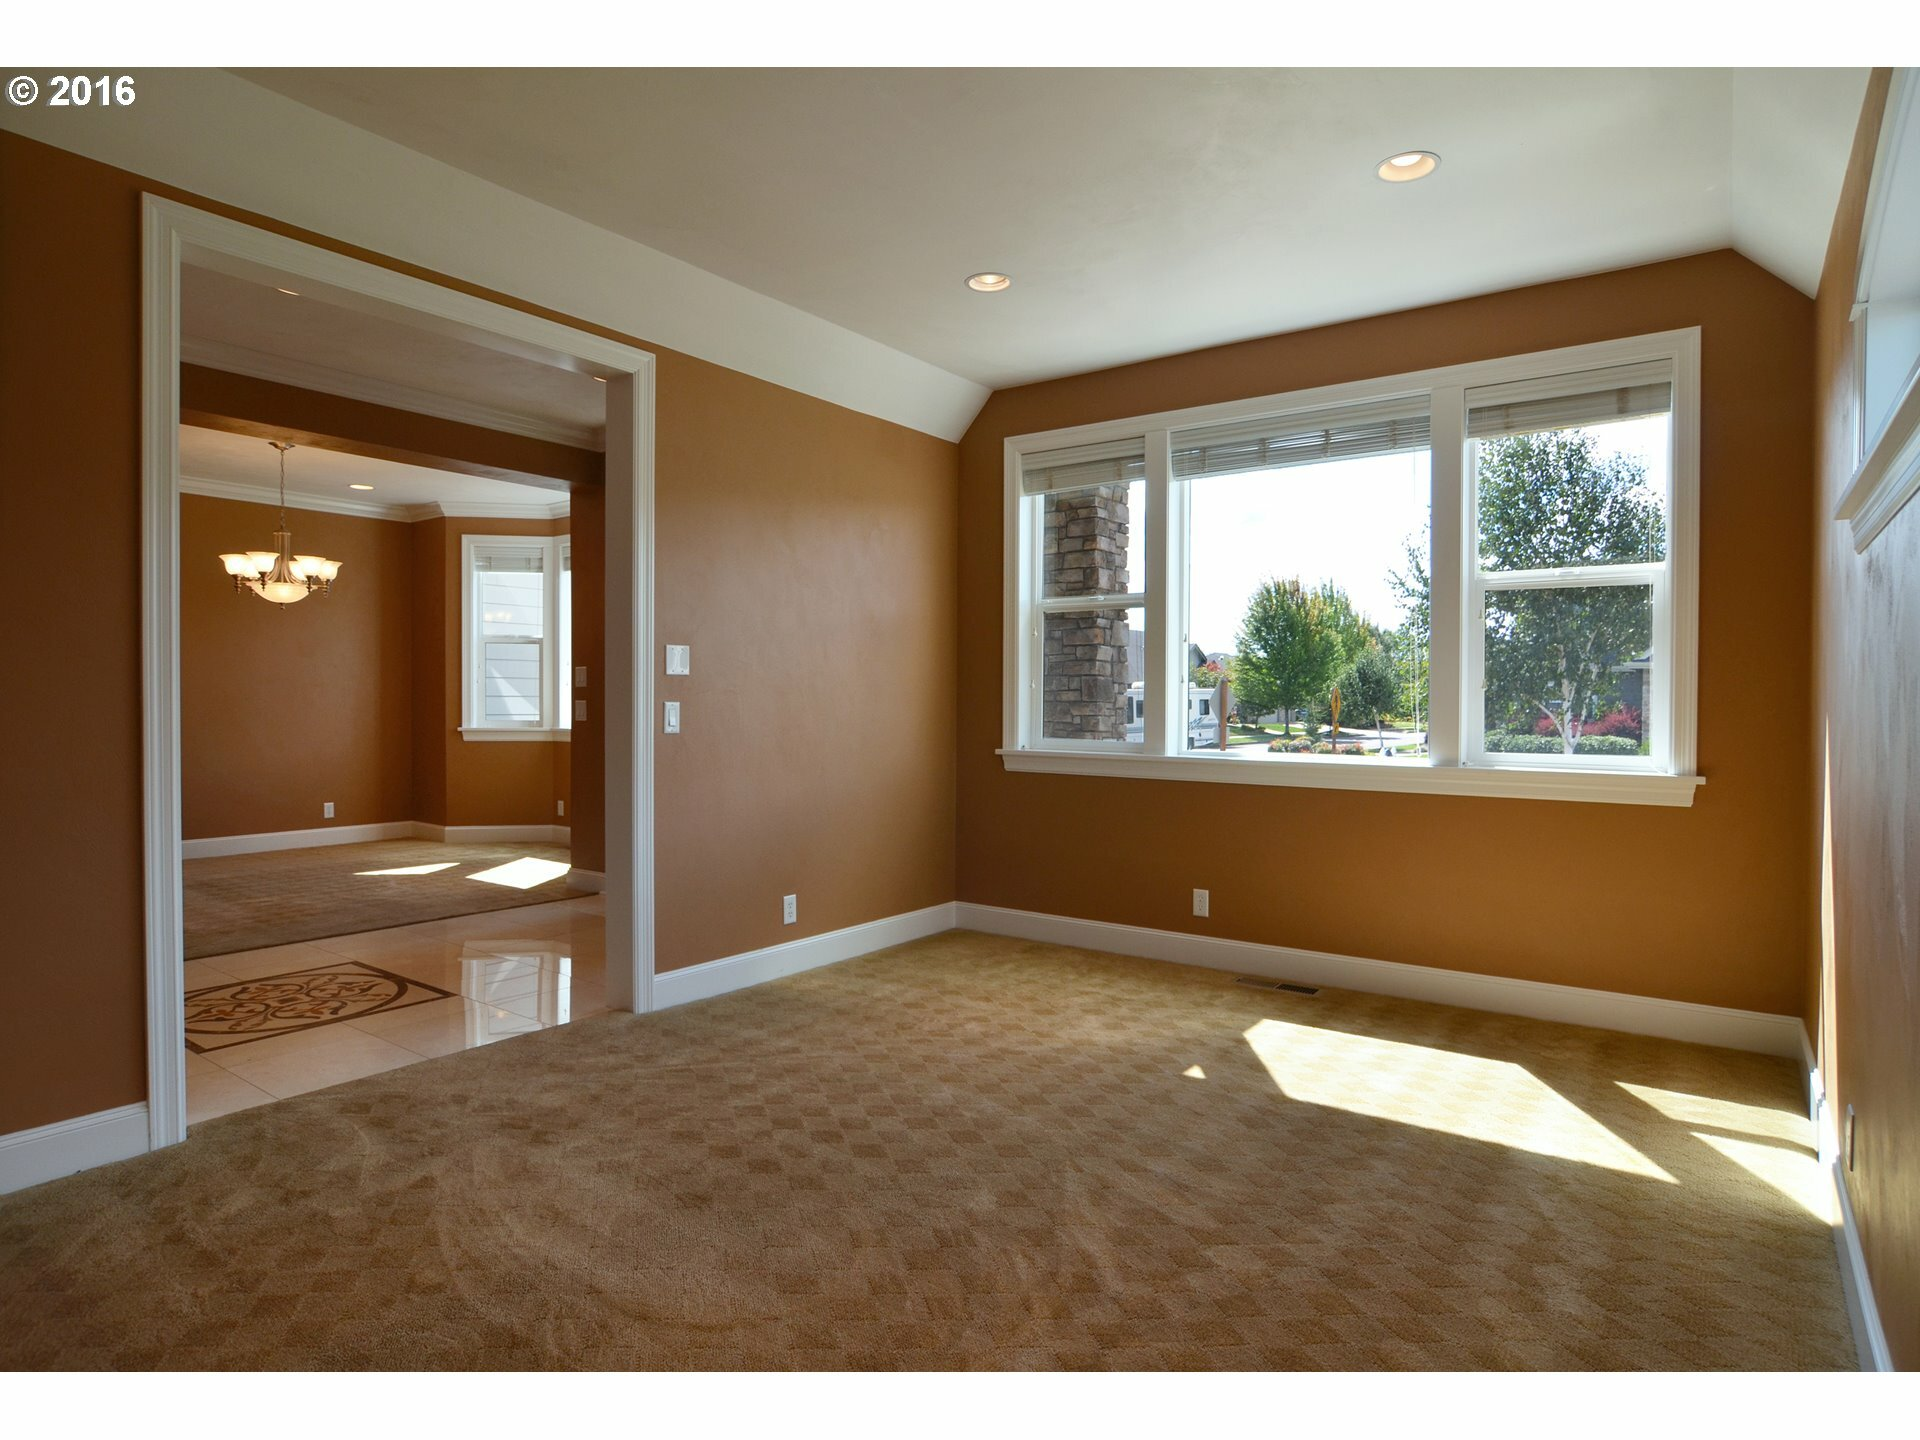 2625 Valley Forge Dr, Eugene, OR - USA (photo 4)